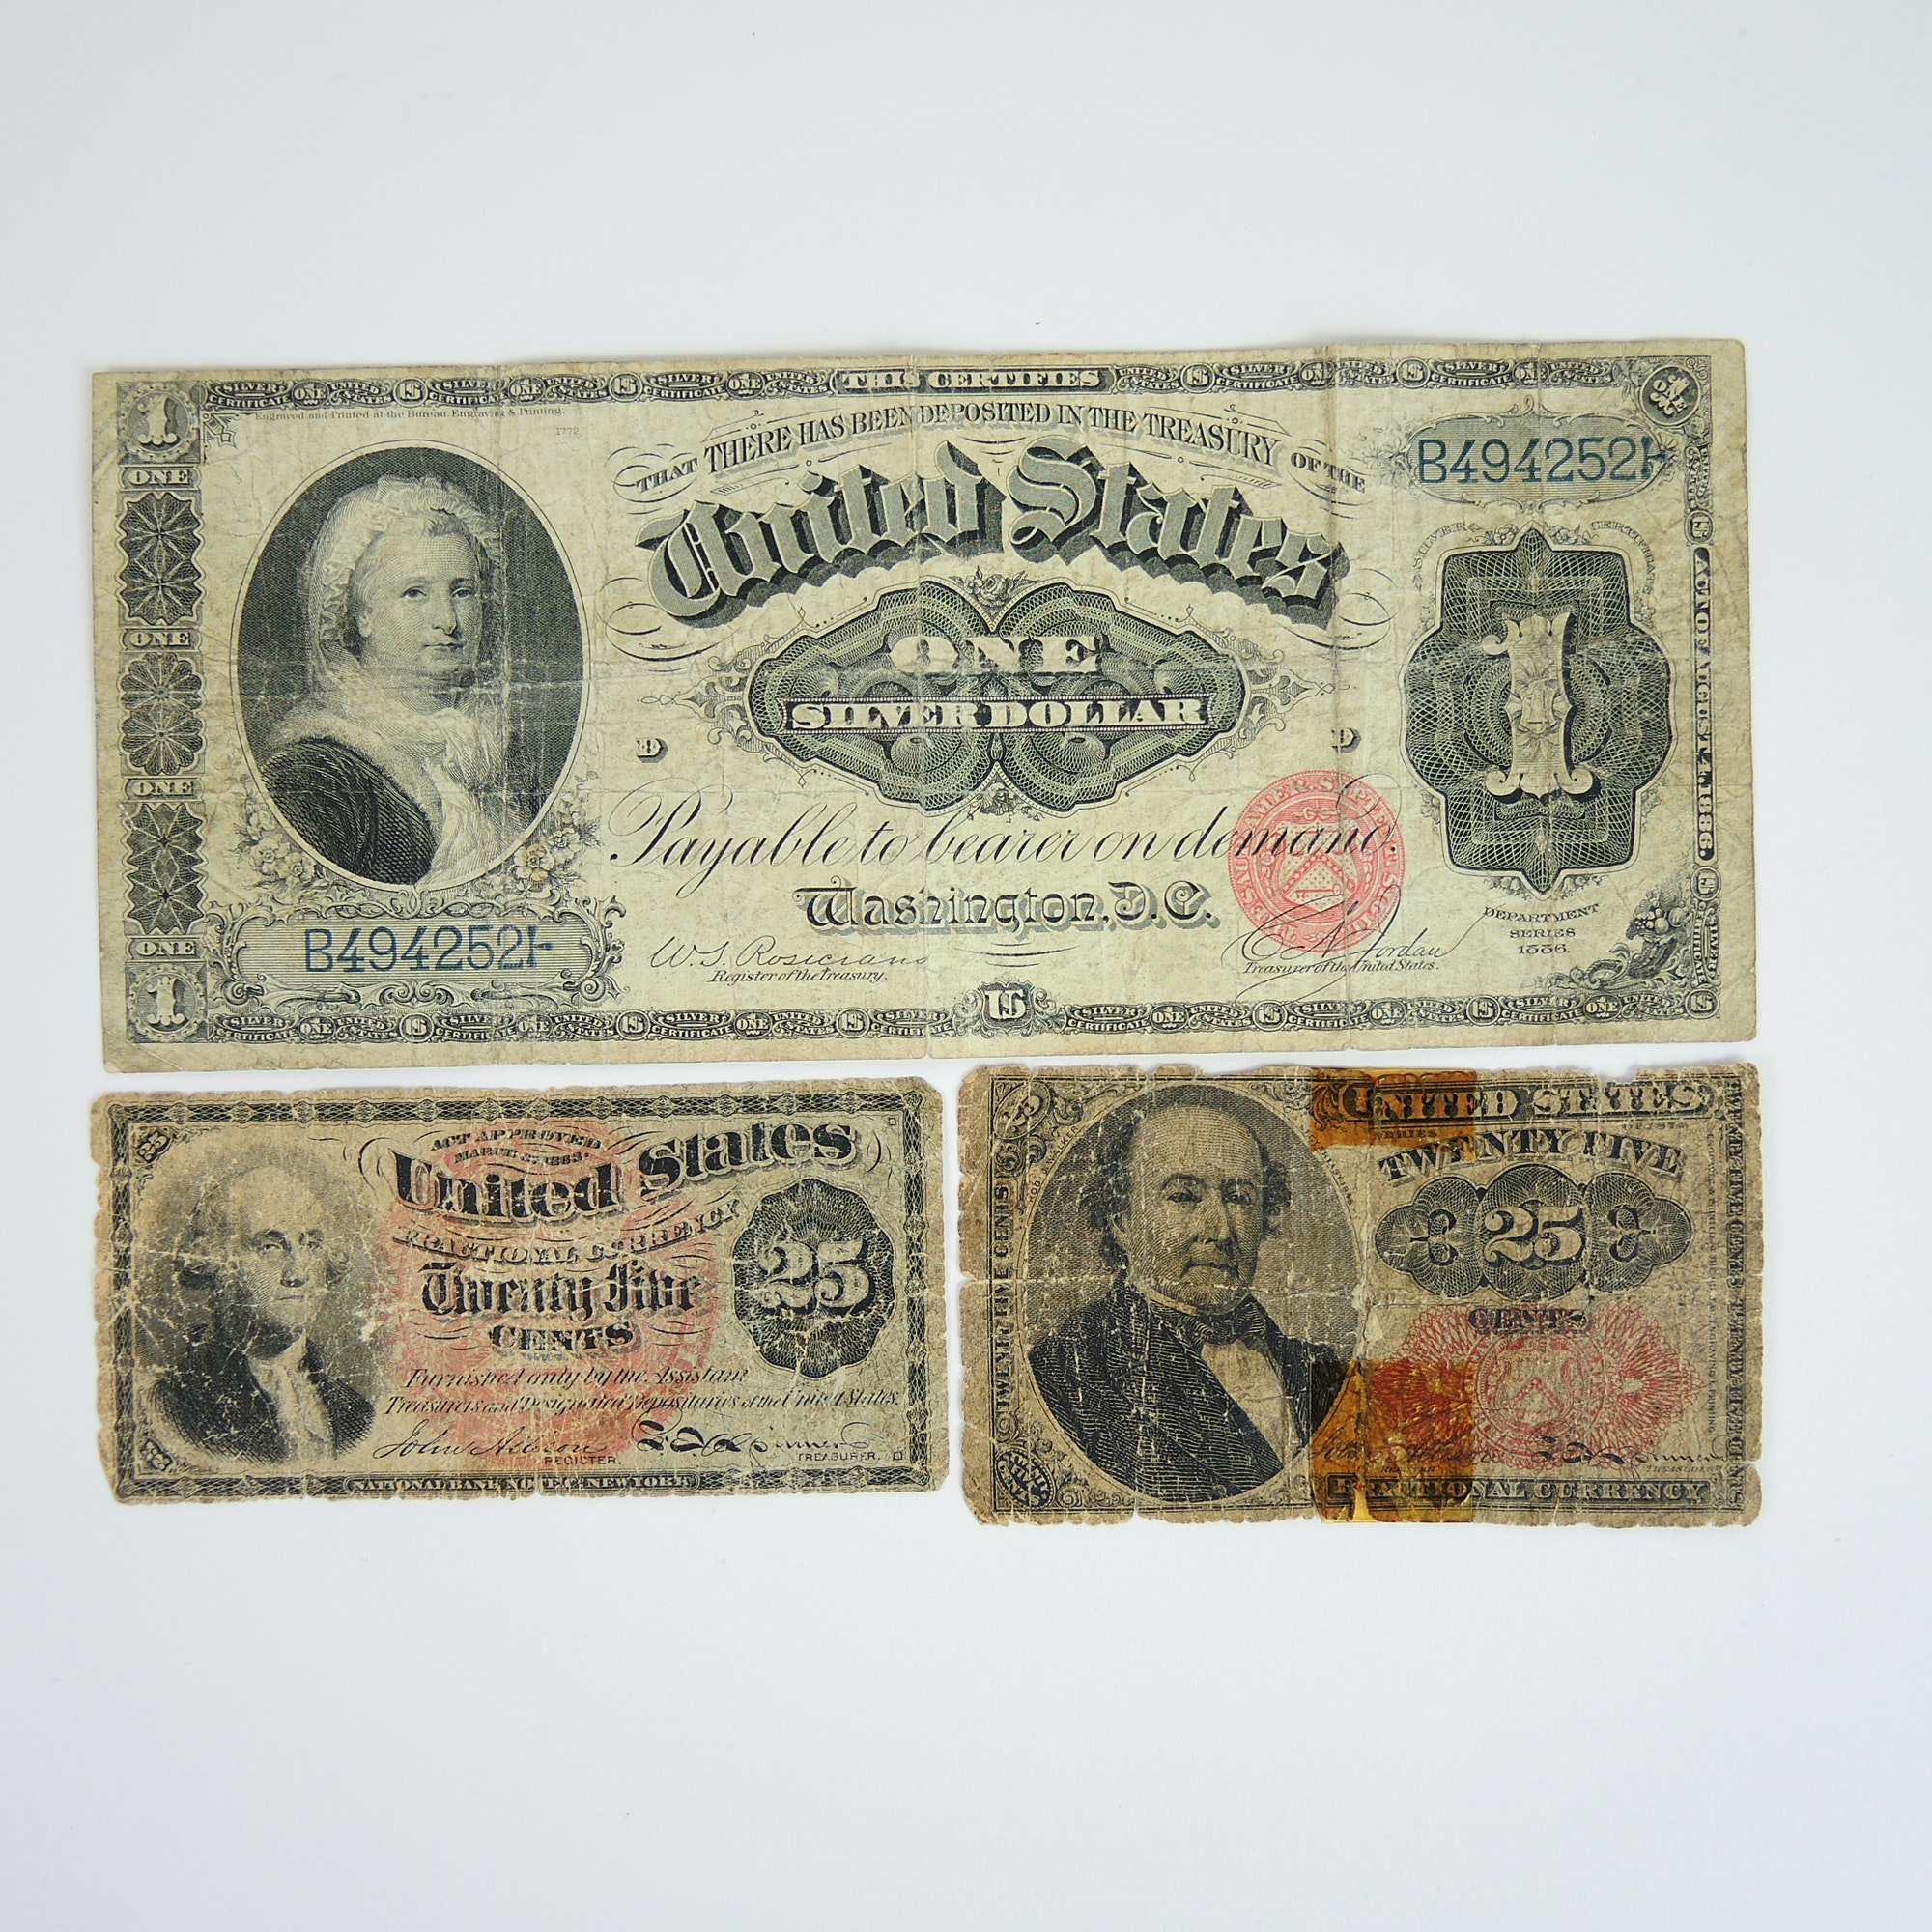 One Dollar 1886 Silver Certificate and Fractional Currency Notes